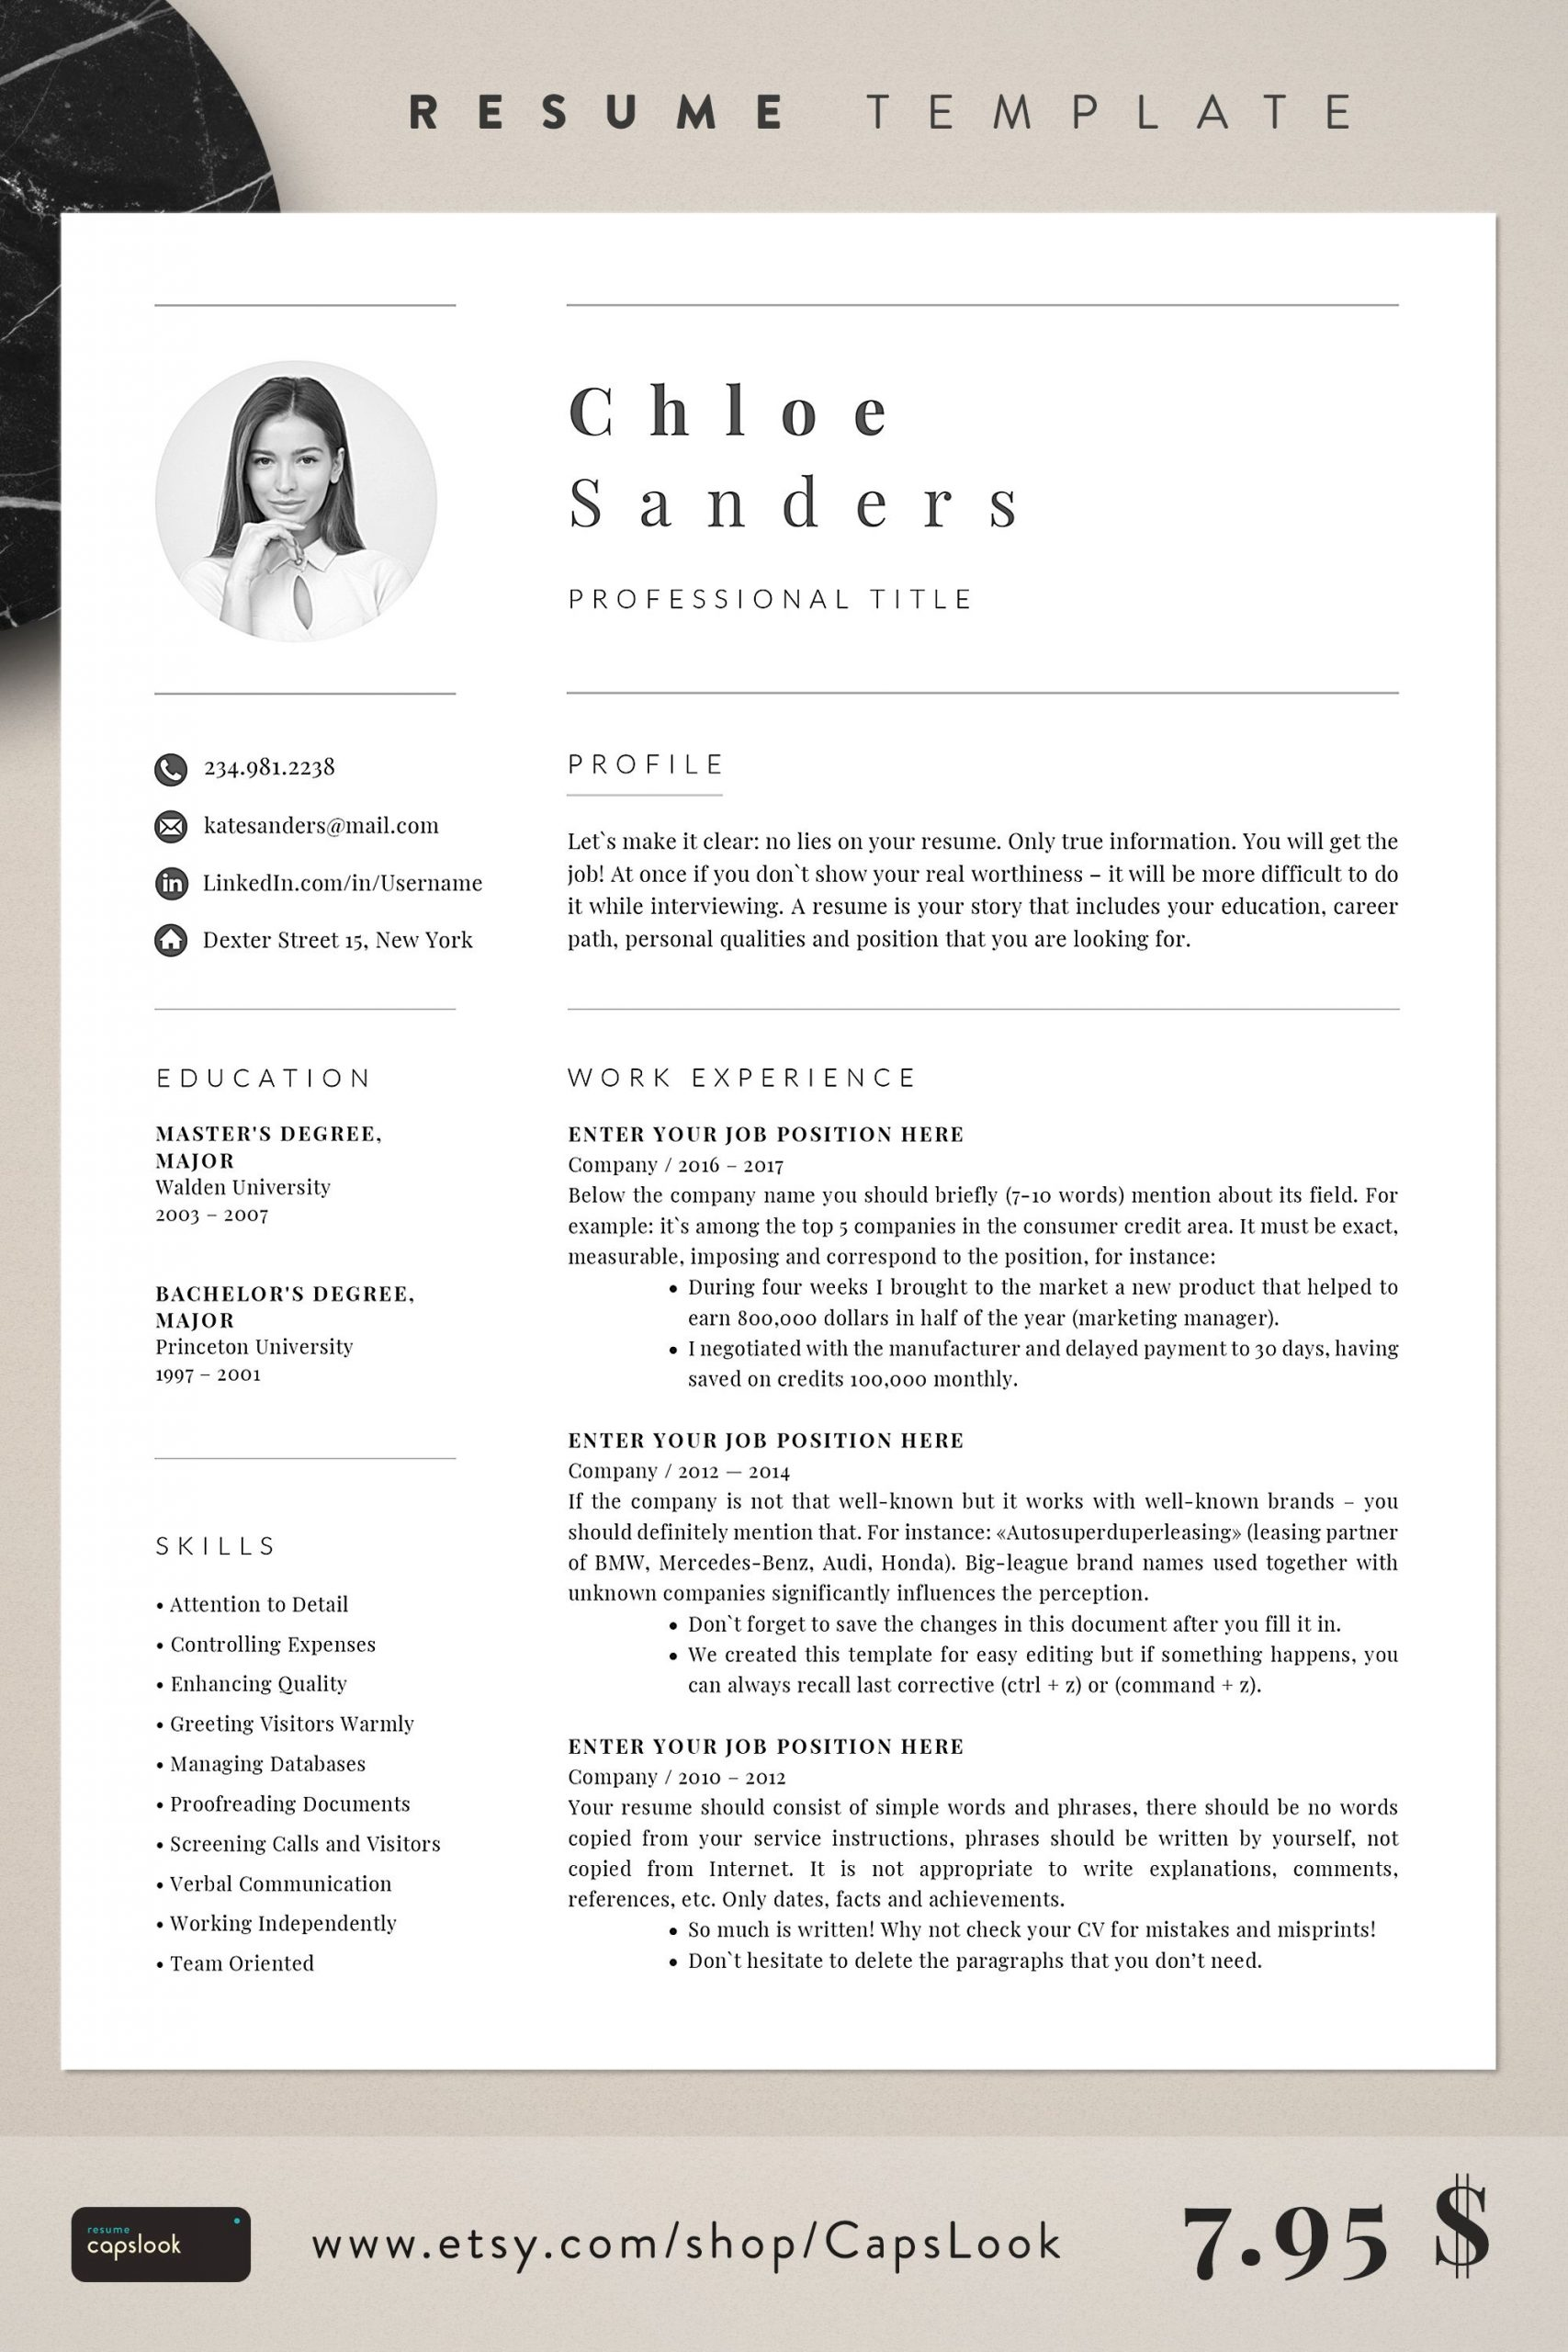 Esthetician Resume Cover Letter Of Resume Template Etsy 2019